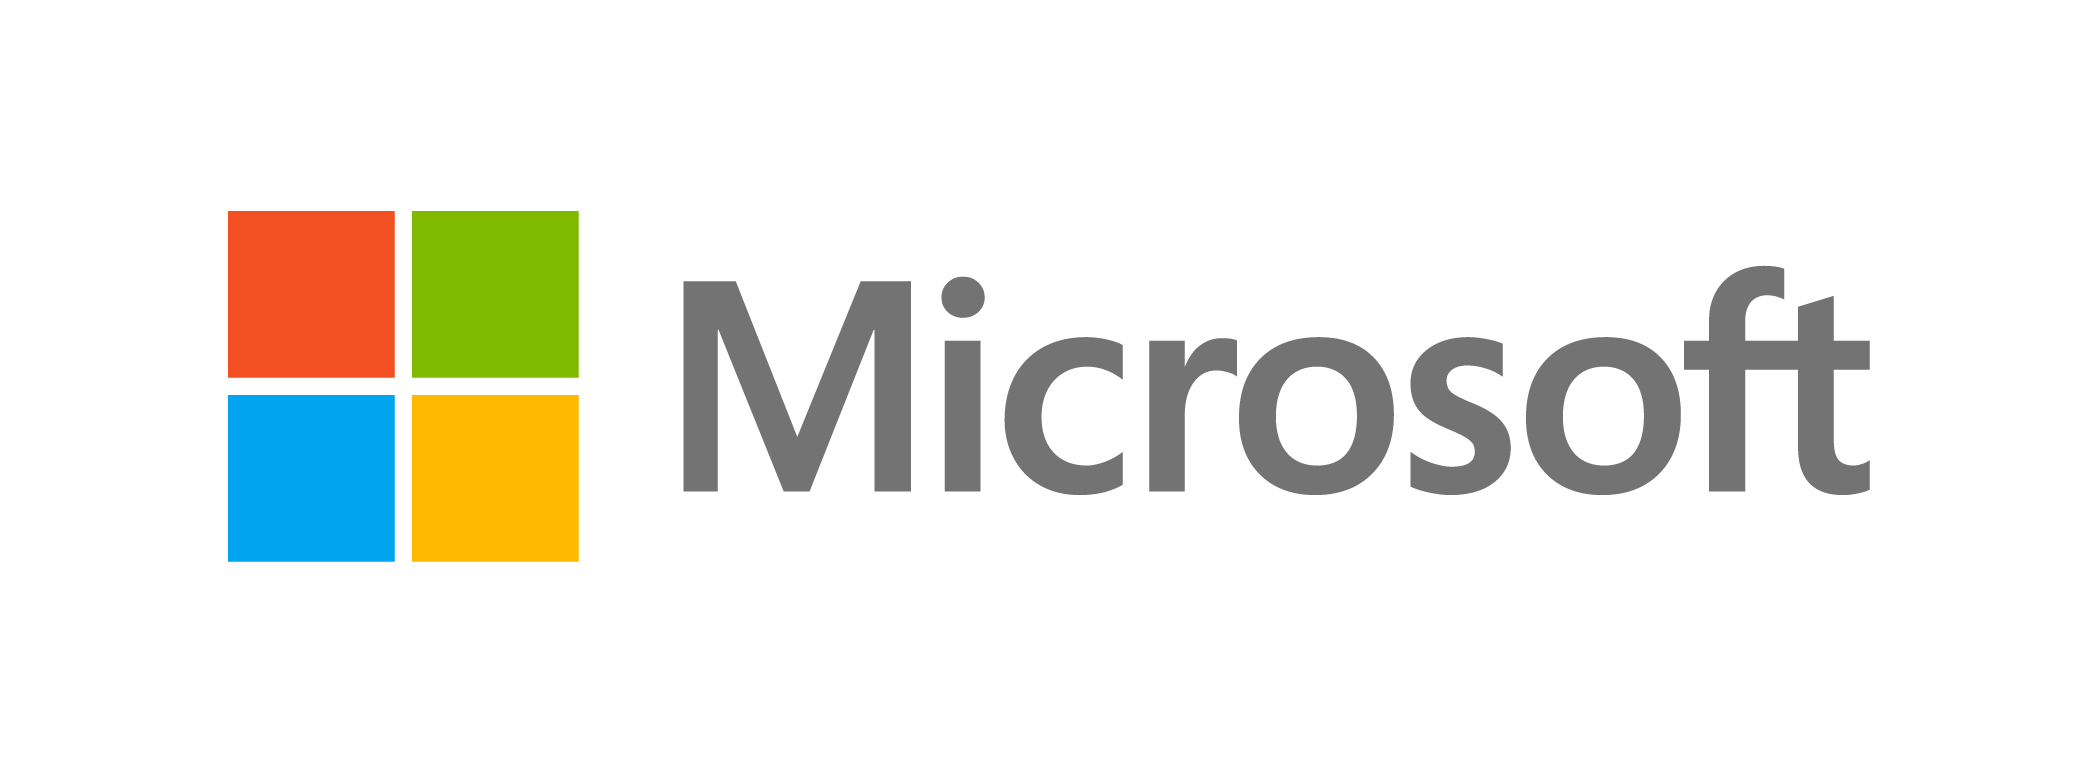 Will Microsoft be able to survive in the phone market? Read on!